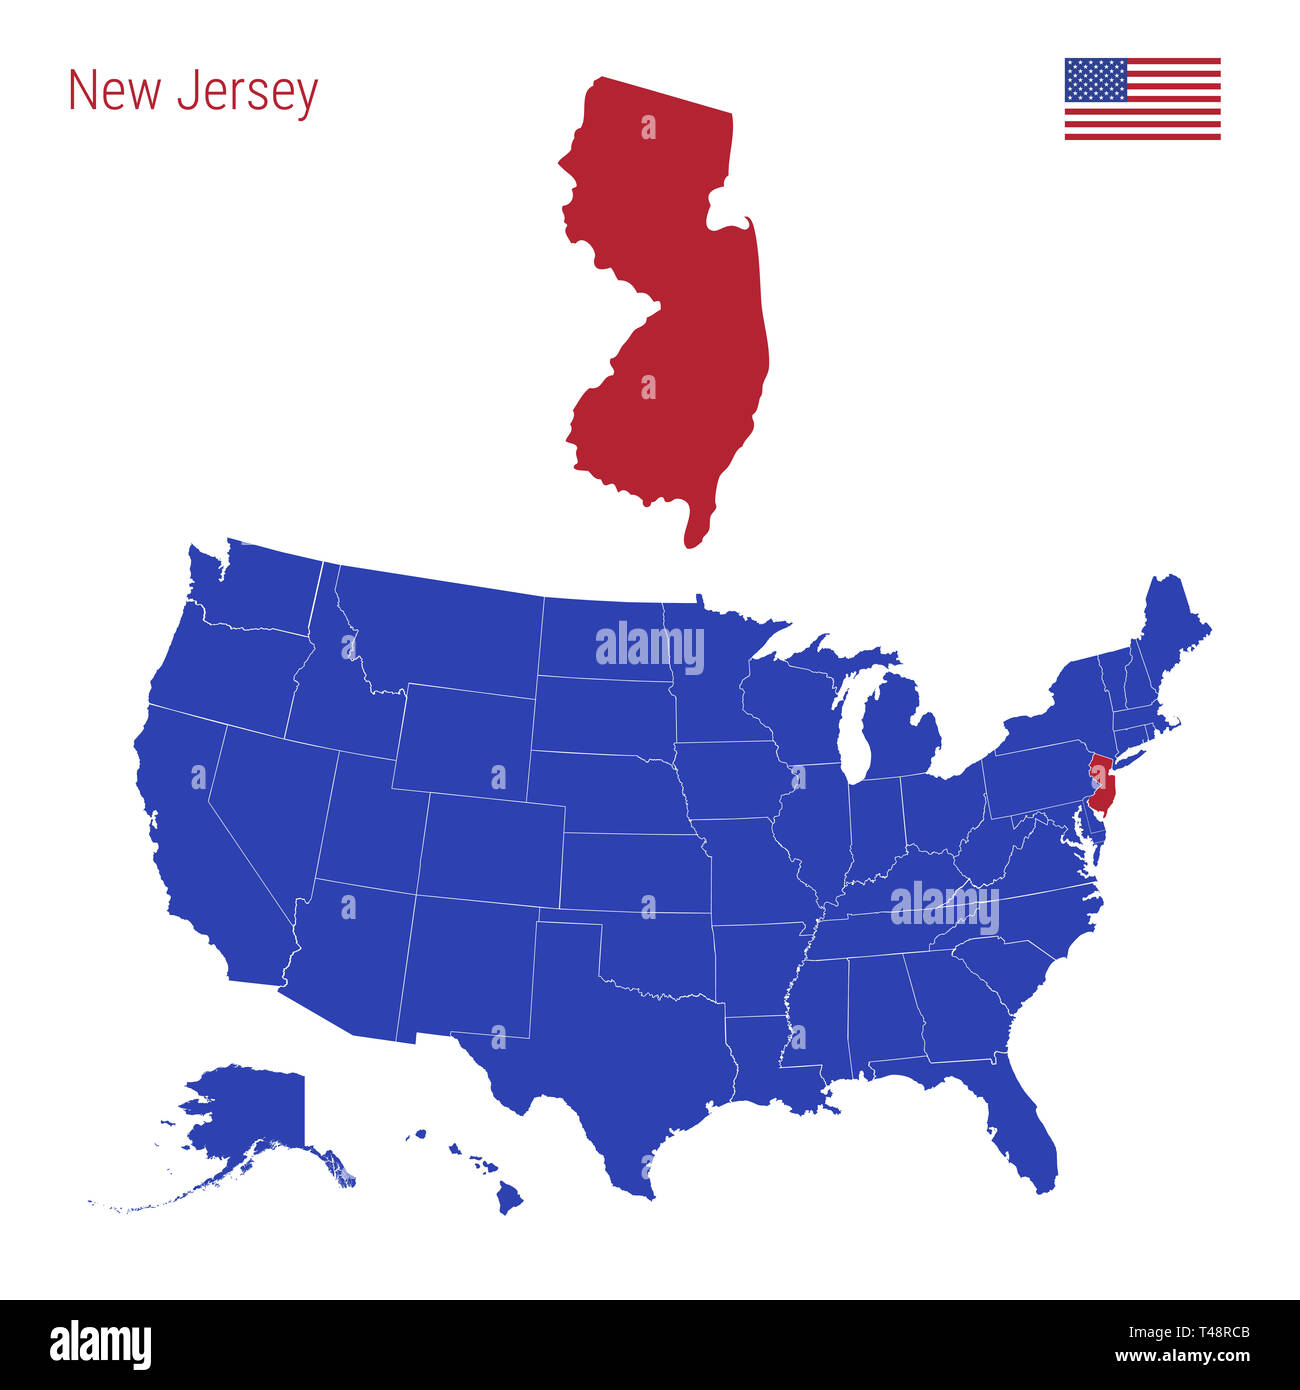 New Jersey State Map Stock Photos & New Jersey State Map Stock ...